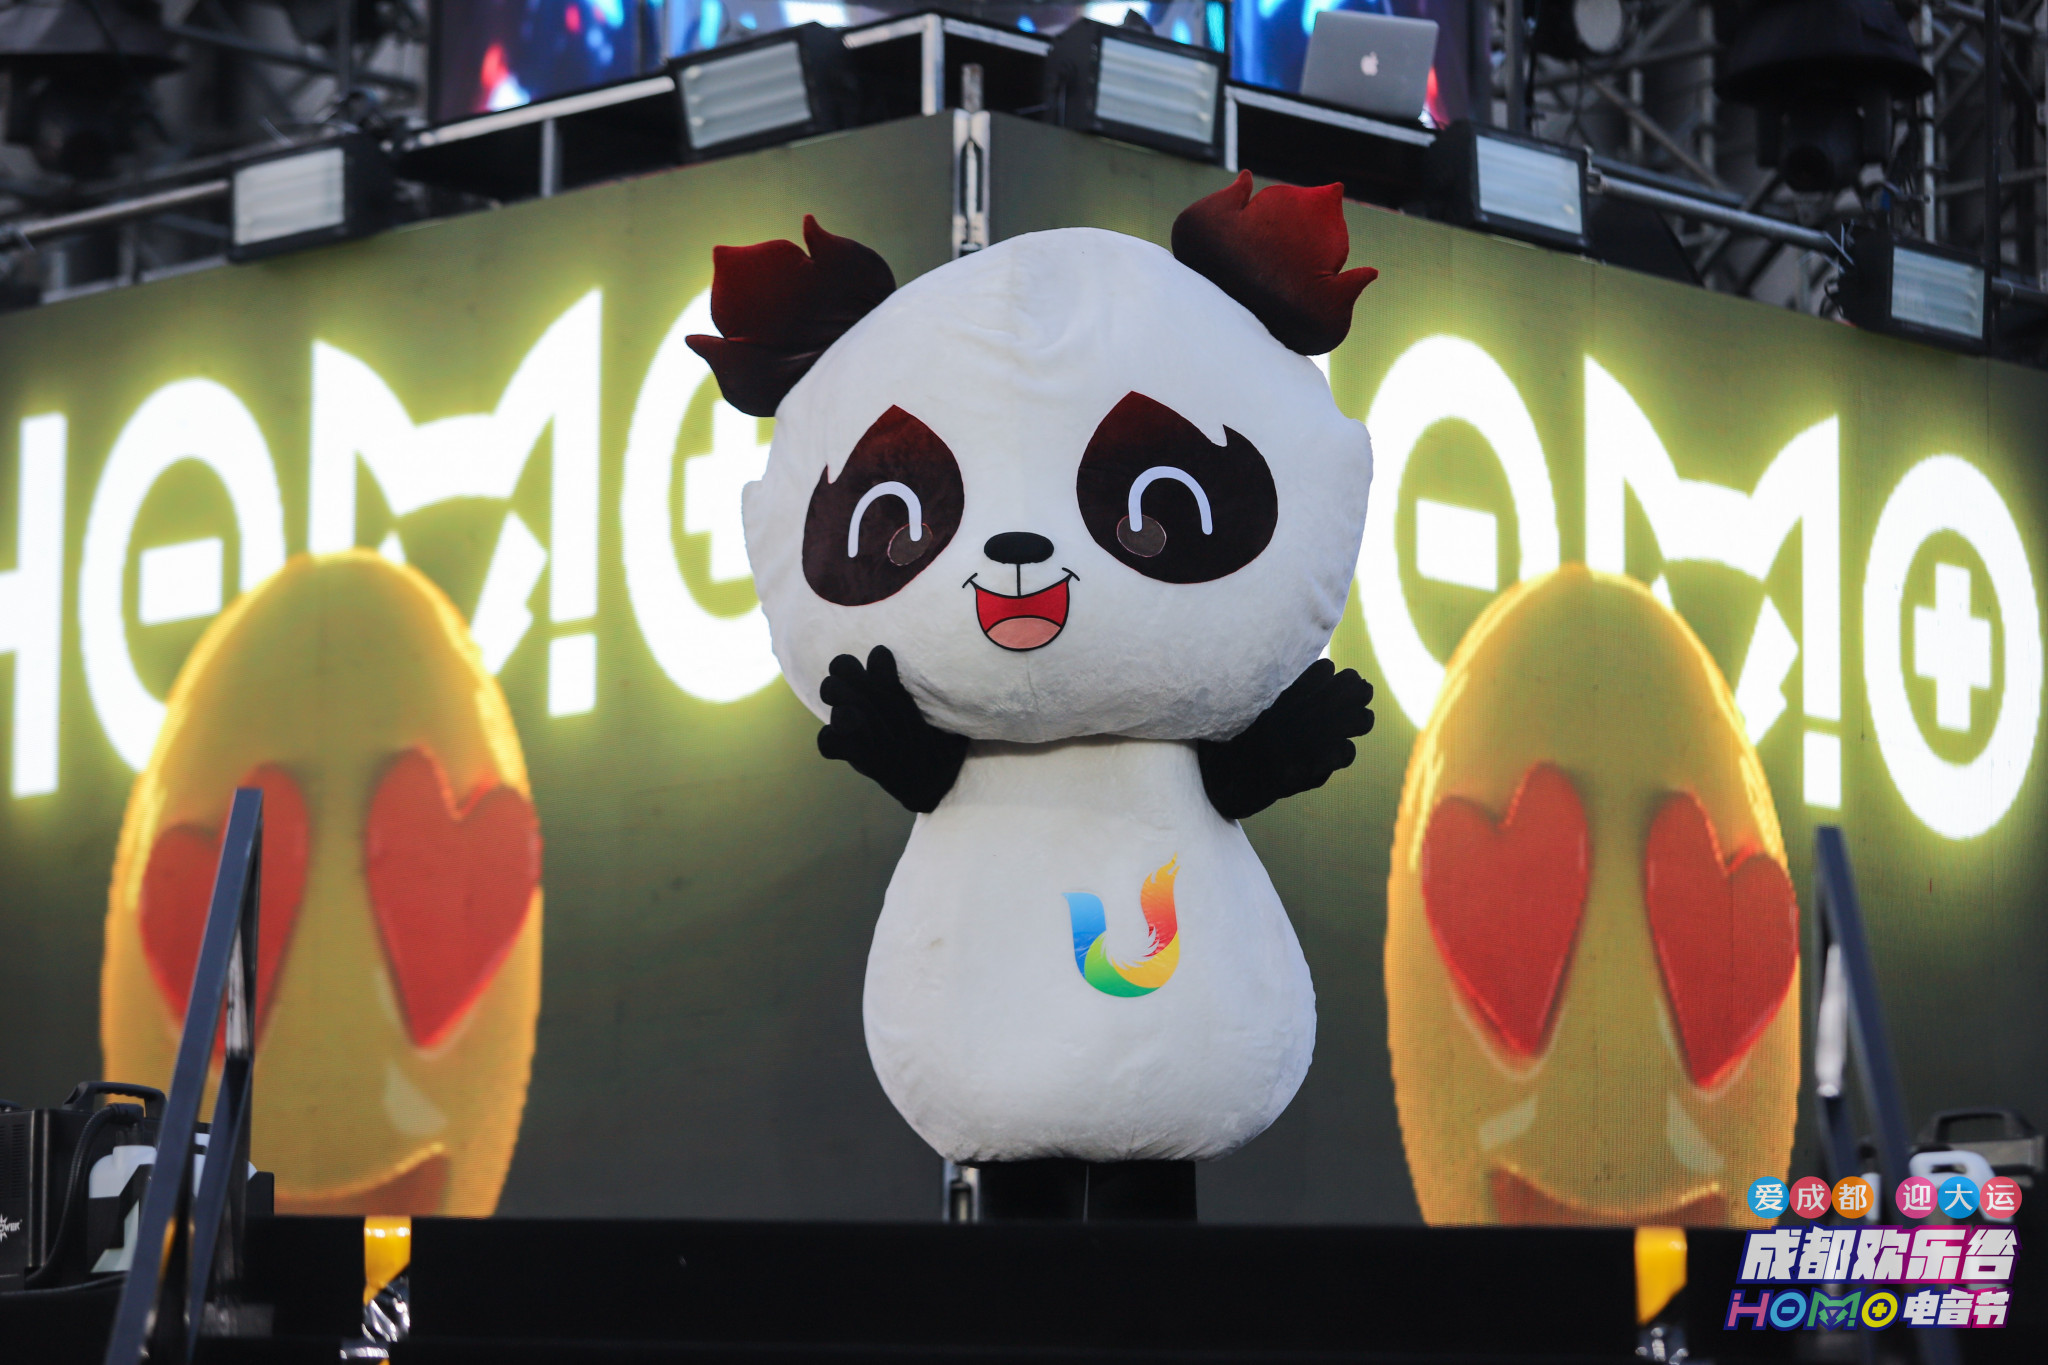 Chengdu 2021 is scheduled for August of next year ©Chengdu 2021